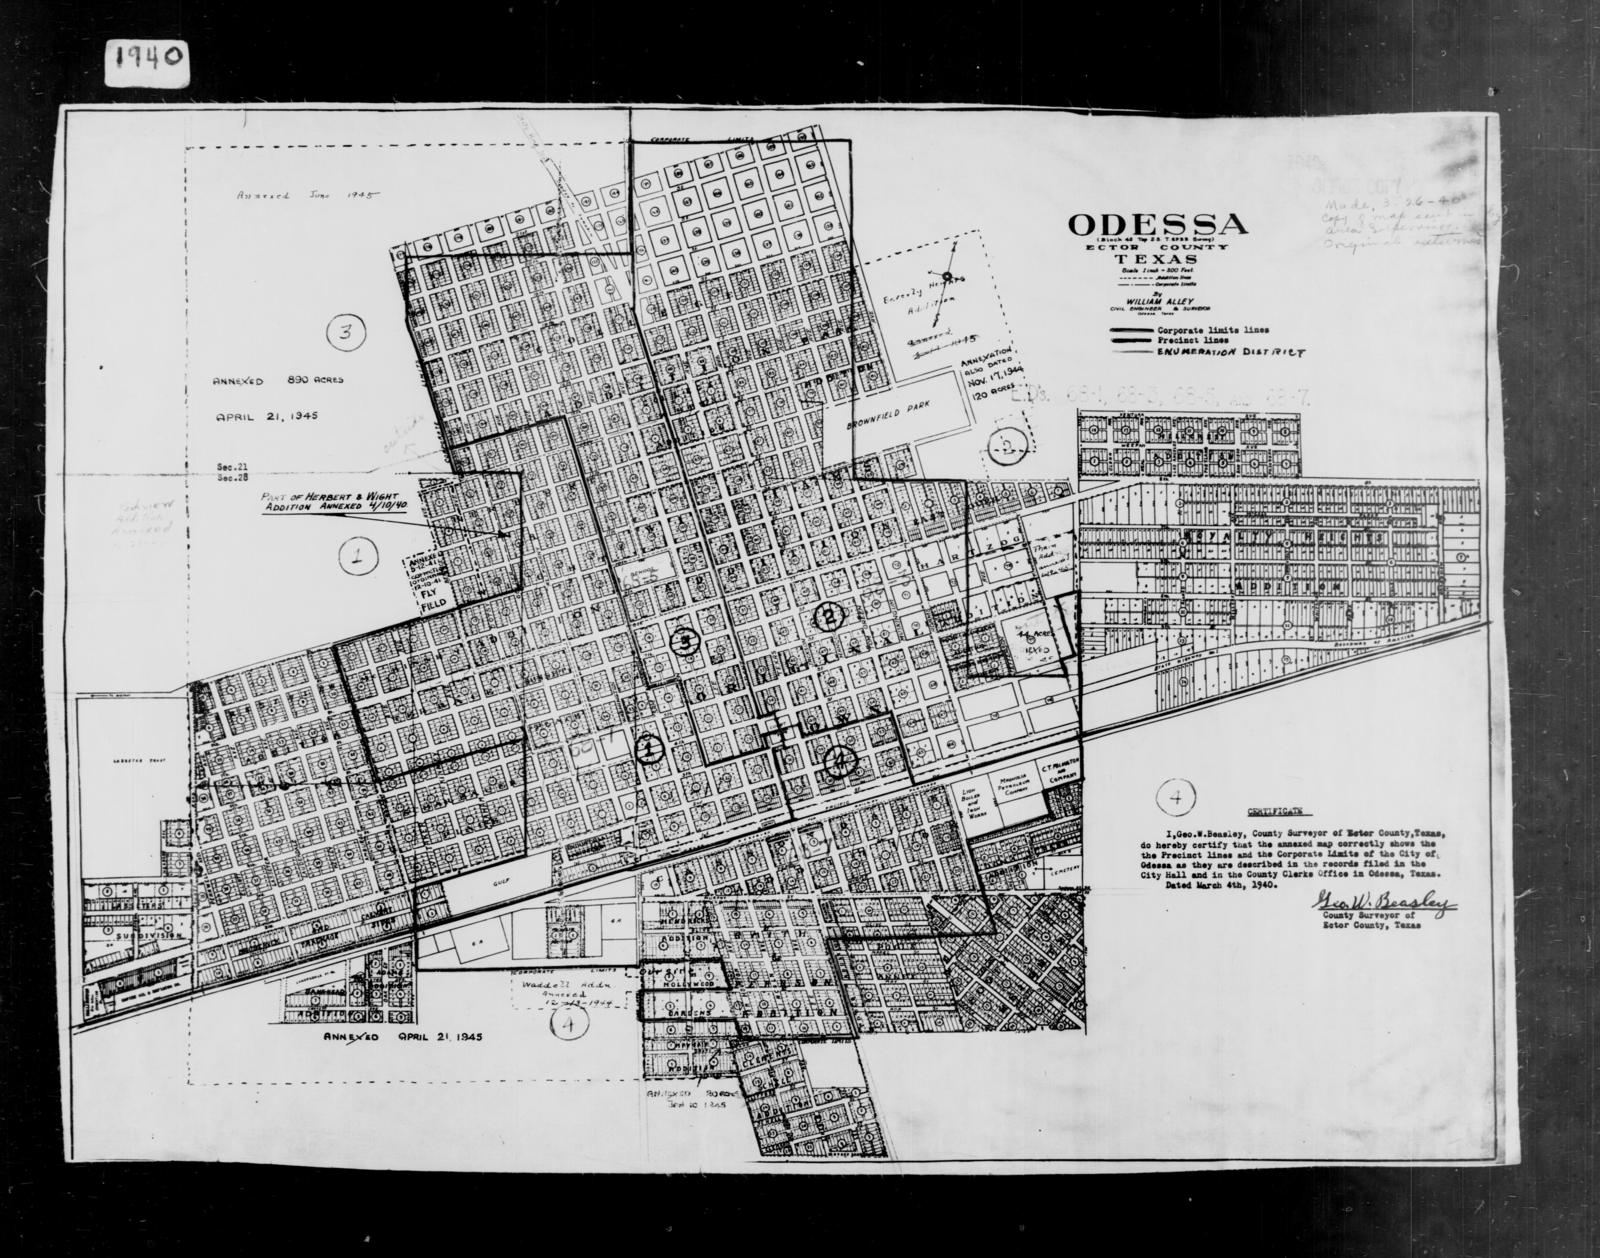 1940 Census Enumeration District Maps - Texas - Ector County ... on mayor of texas, dental society of texas, 18th district of texas, 30th district of texas, 4th congressional district texas,